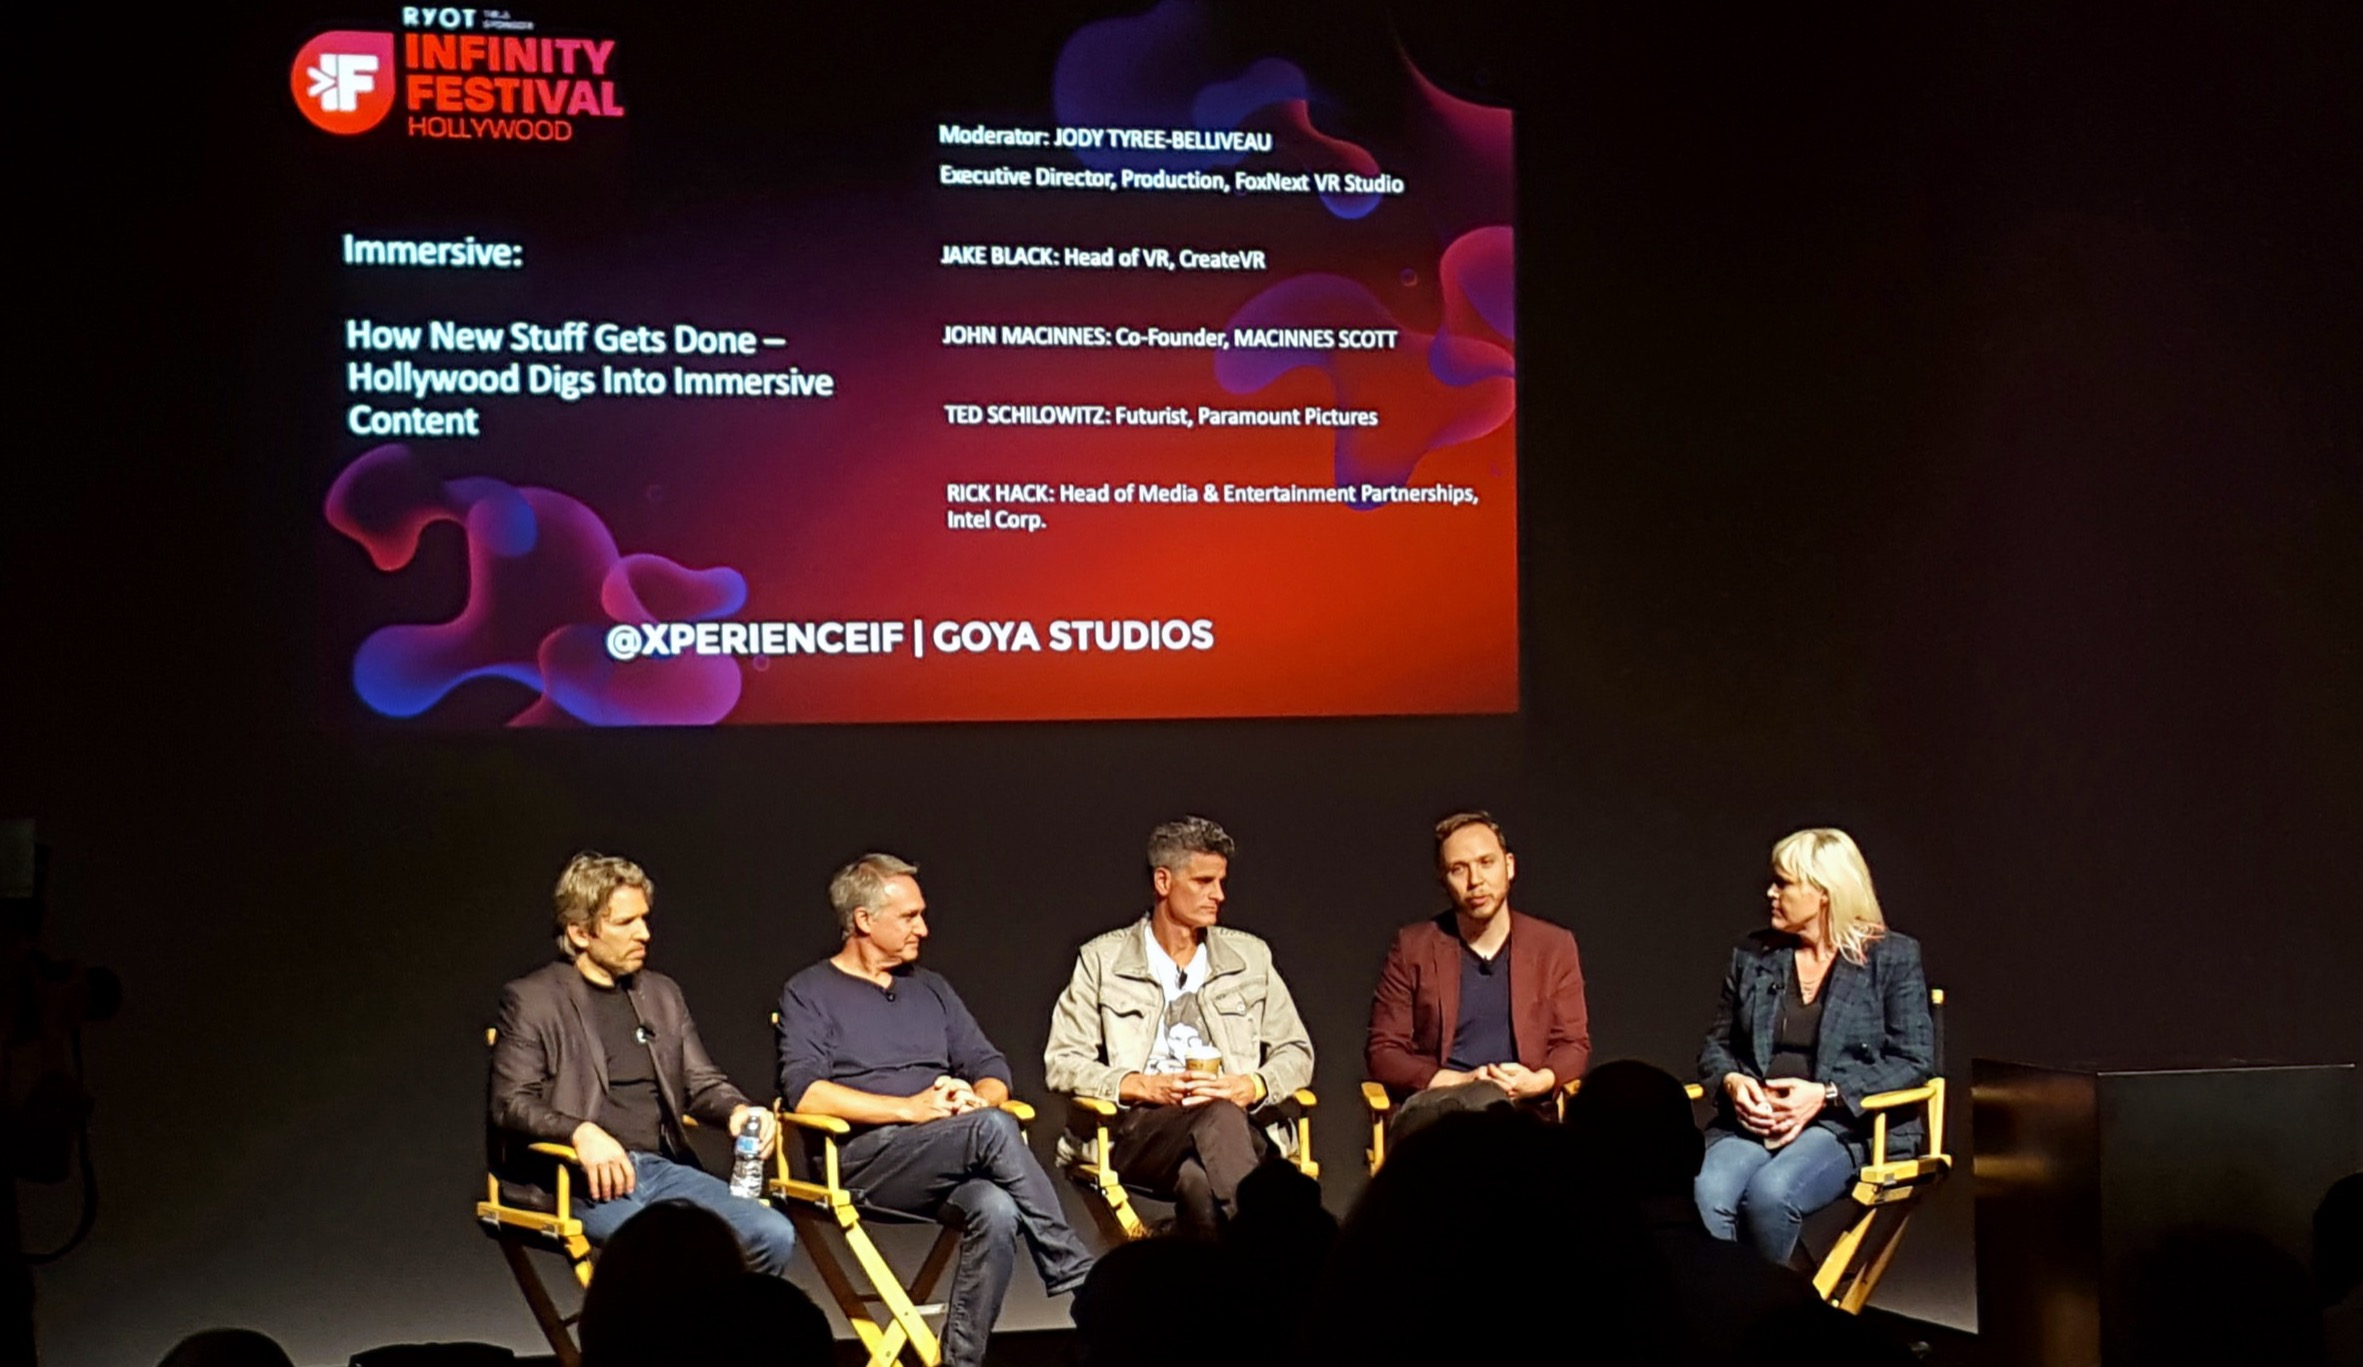 Infinity Festival, Hollywood 2019